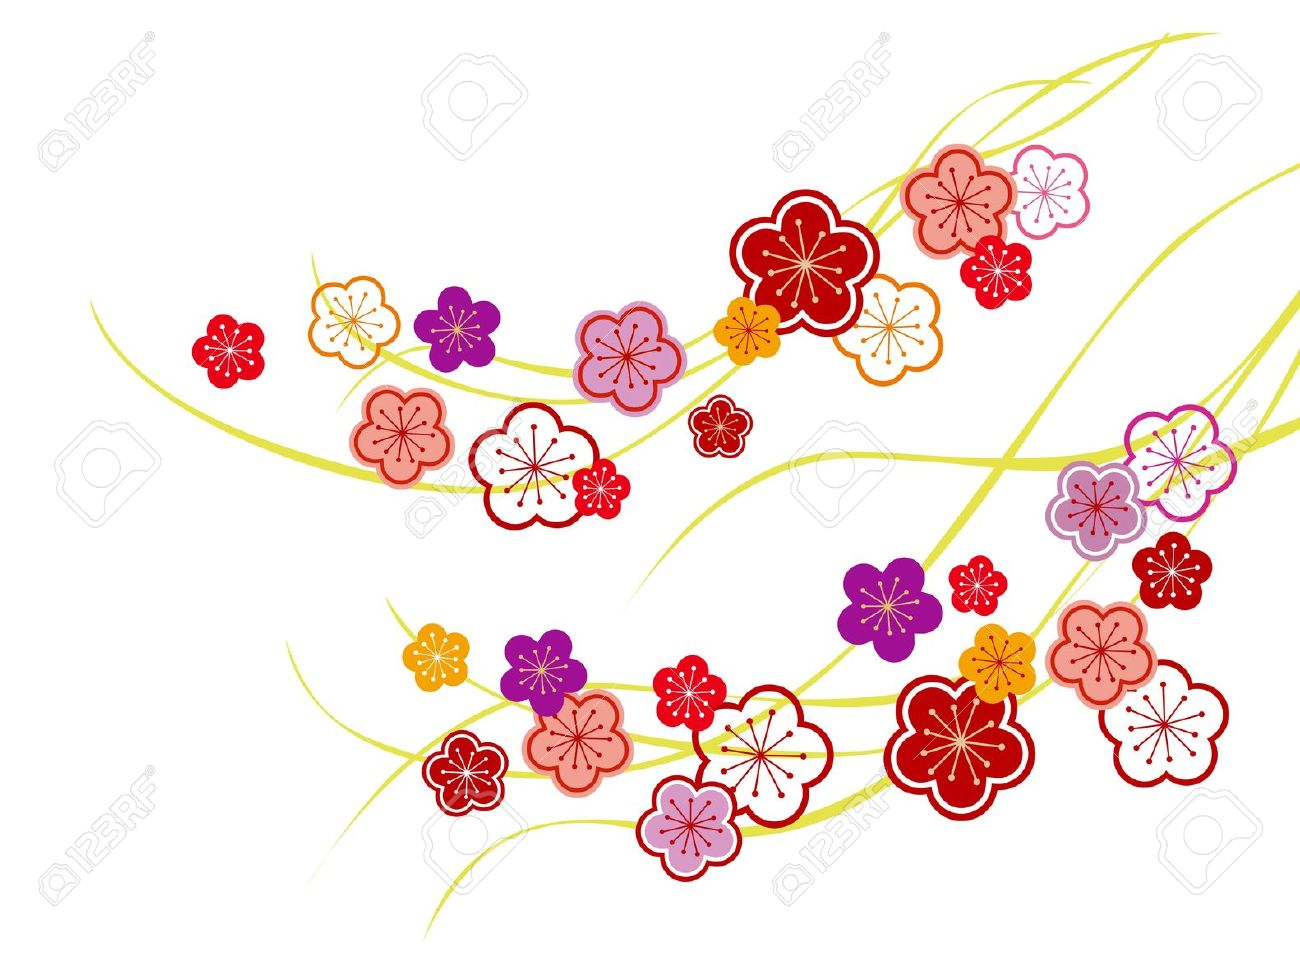 Apricot Blossom clipart #17, Download drawings